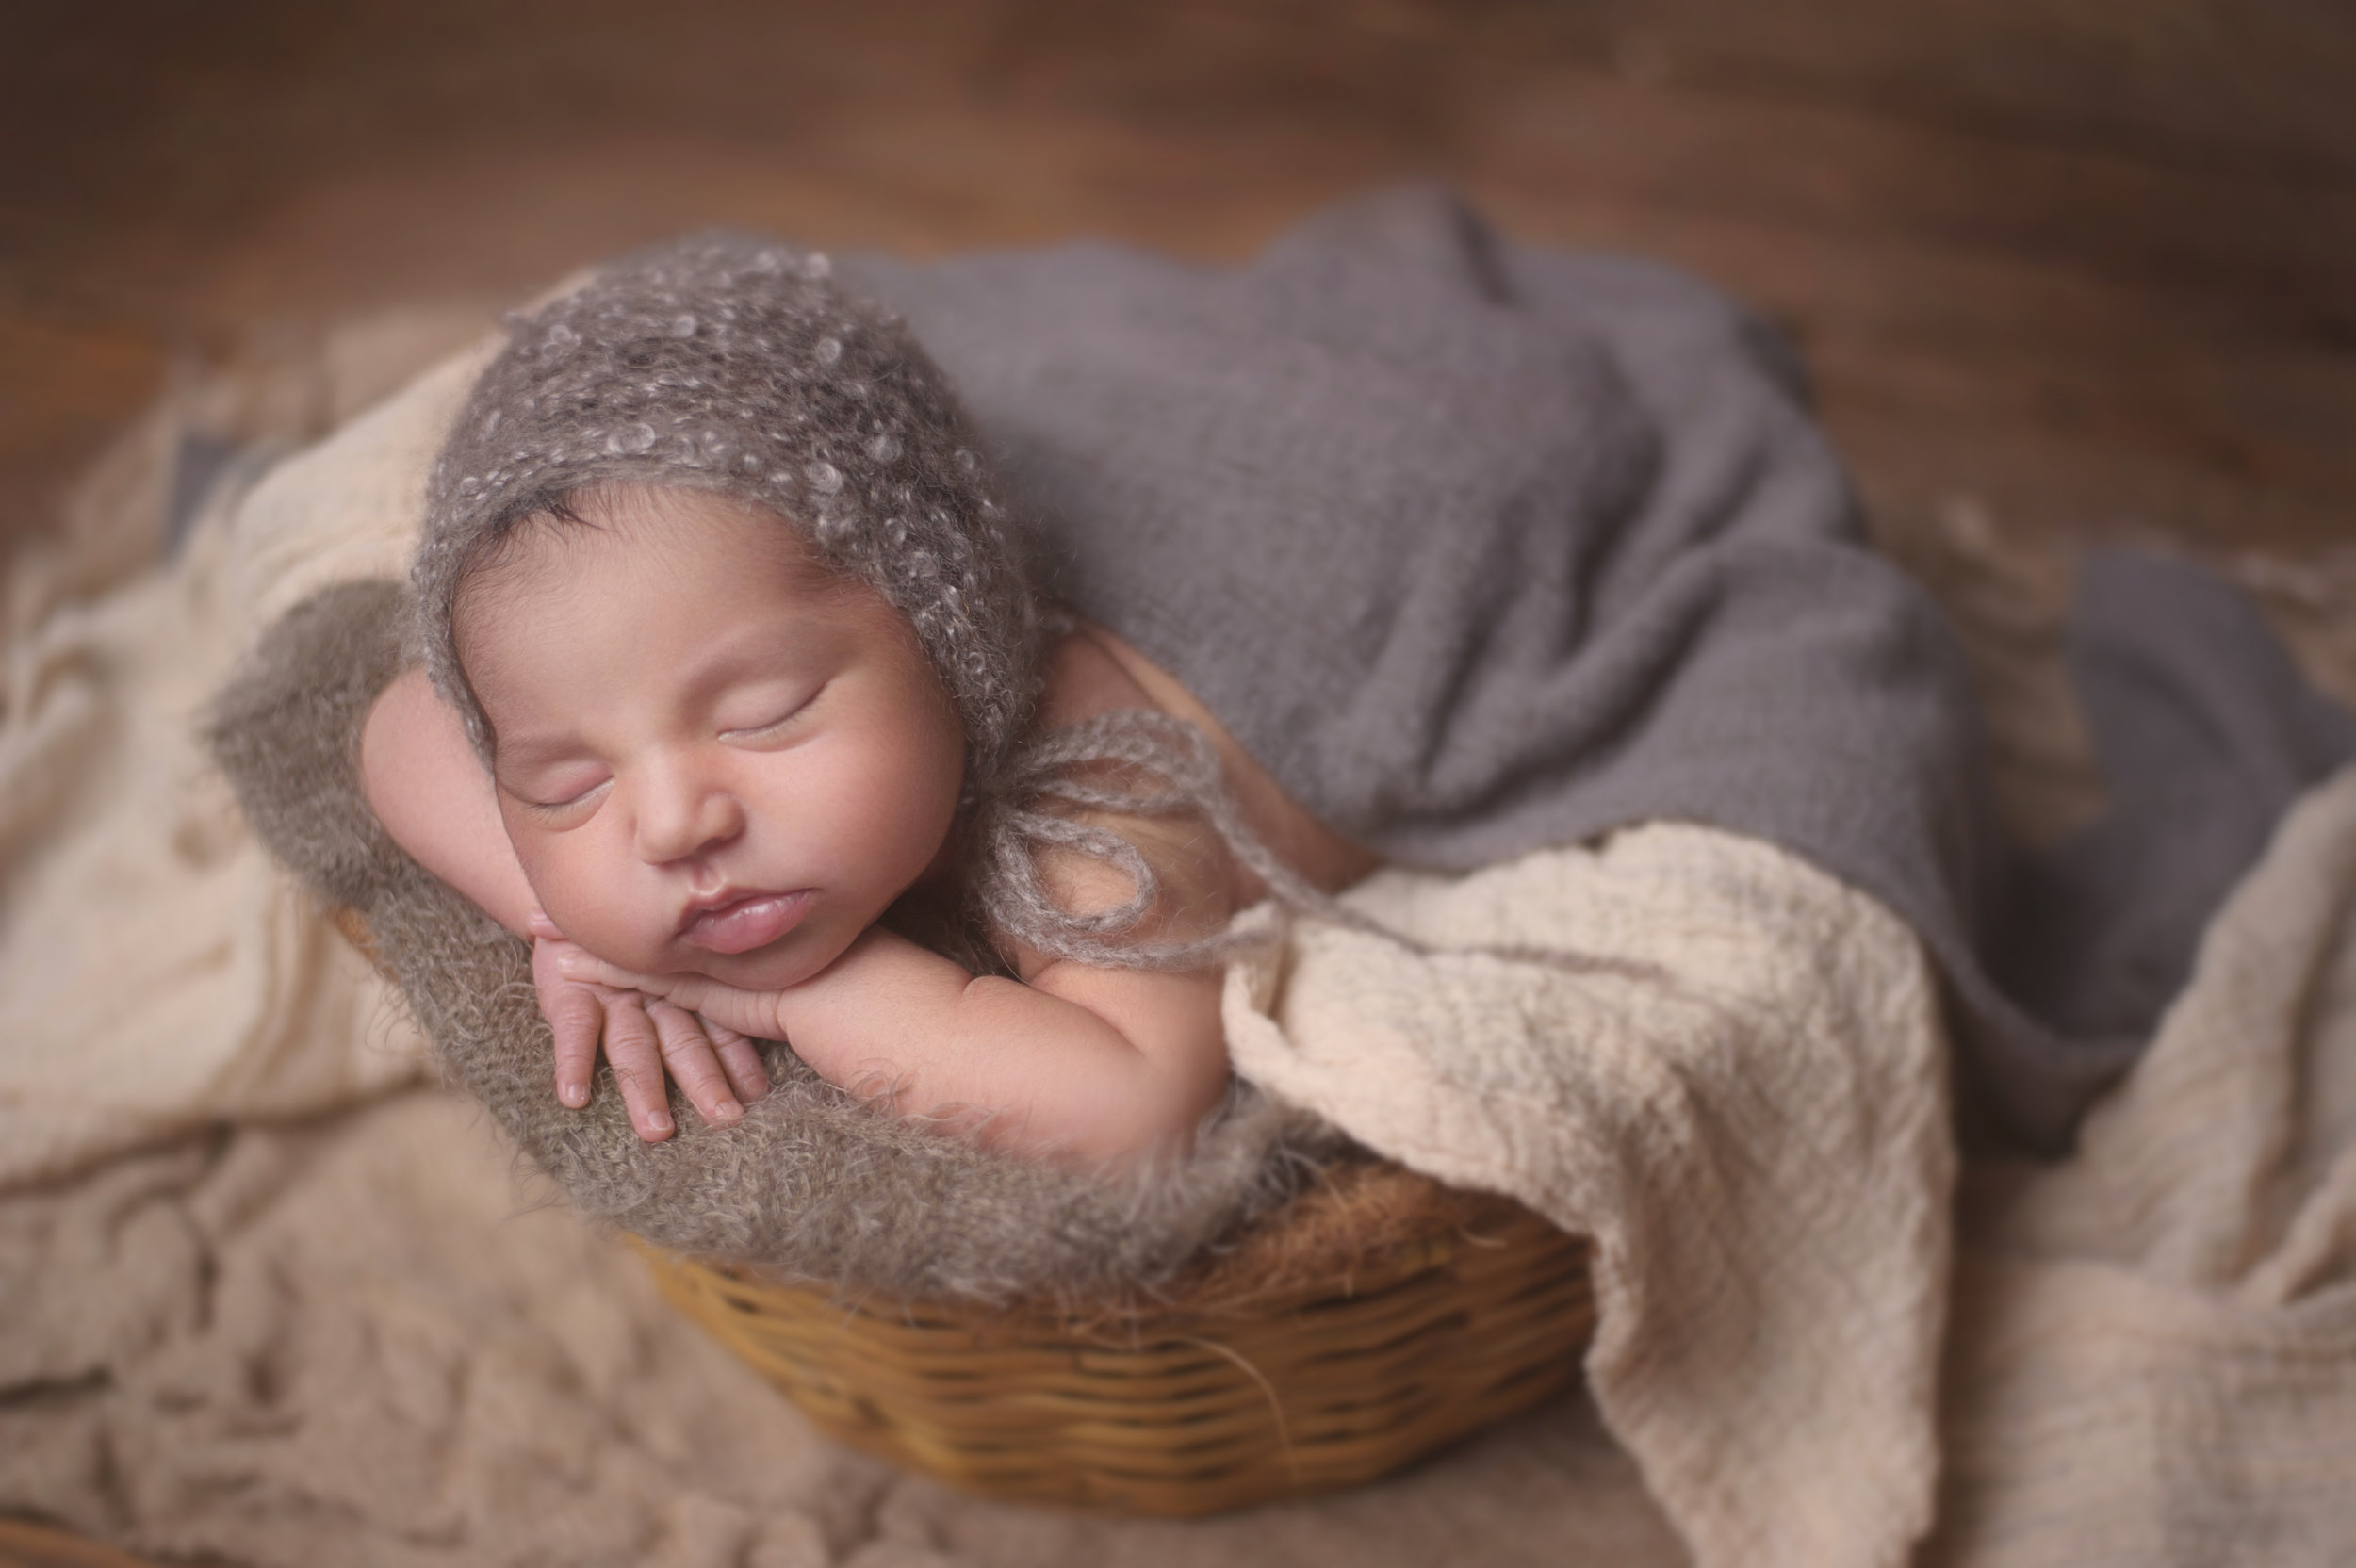 CHICAGO-BEST-NEWBORN-PHOTOGRAPHER-SRI-JANA-7.jpg